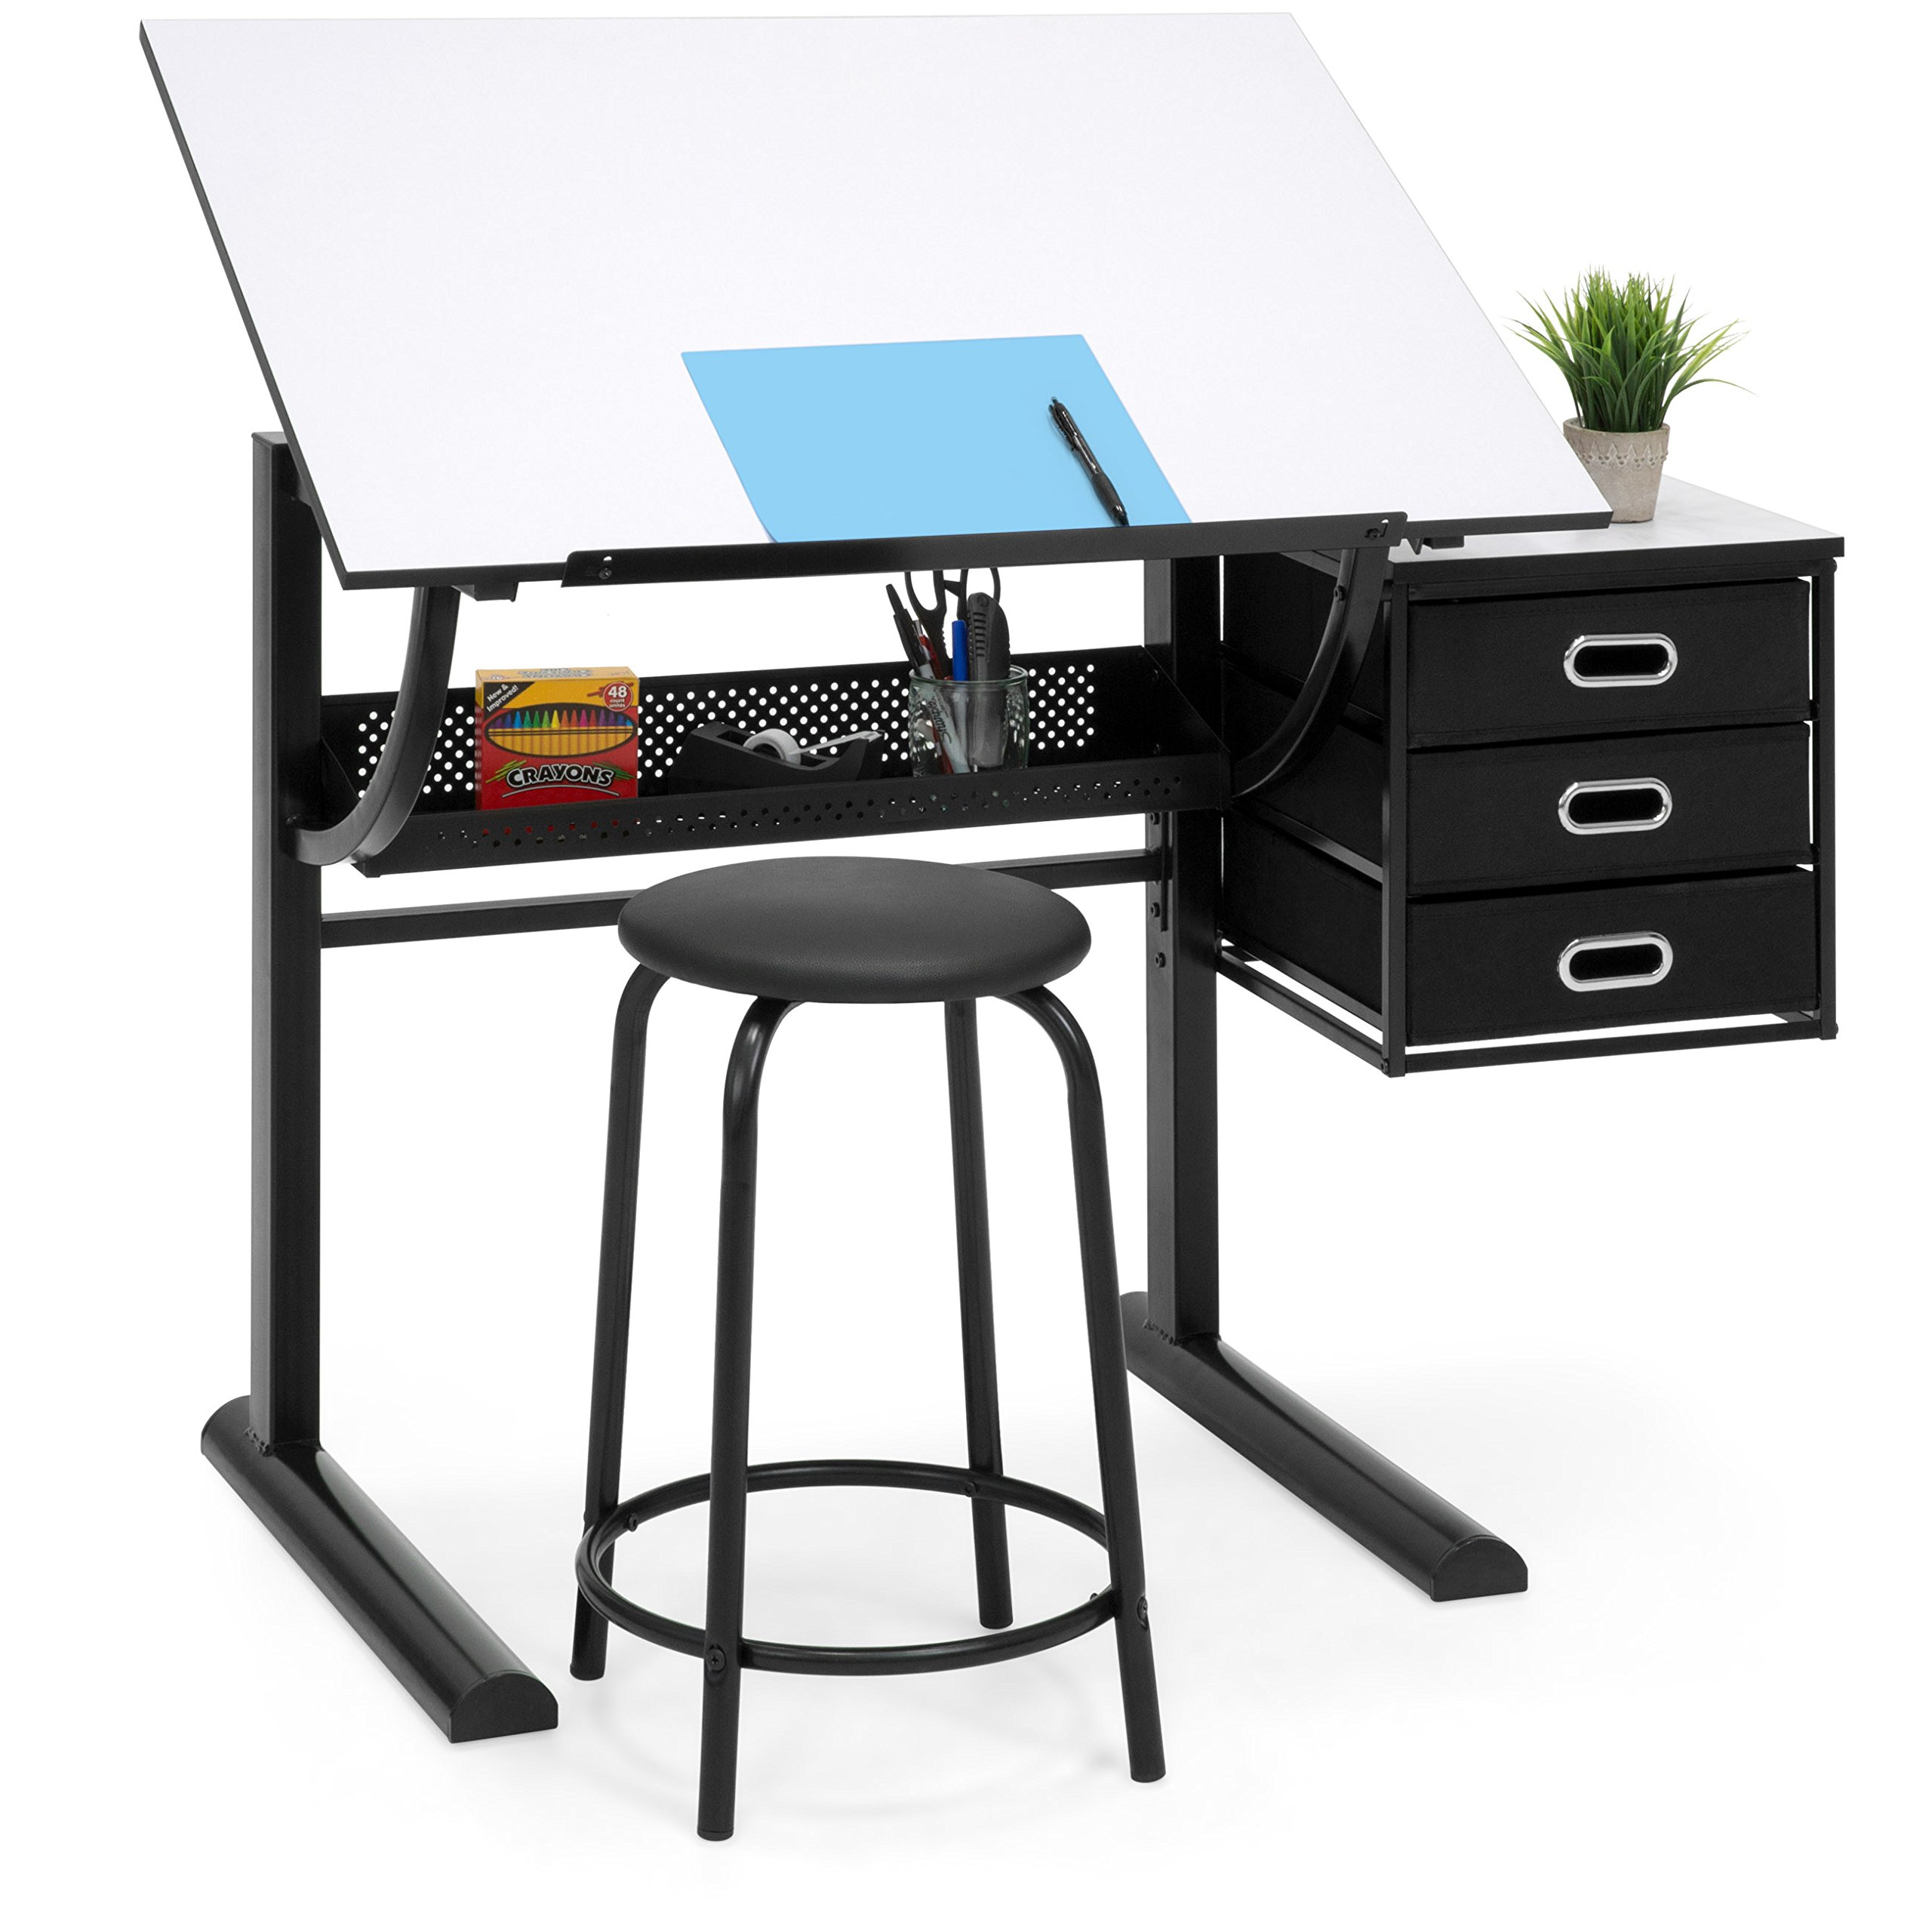 Best Choice Products Drawing Drafting Craft Art Table Folding Adjustable Desk w/Stool - Black/White by Best Choice Products